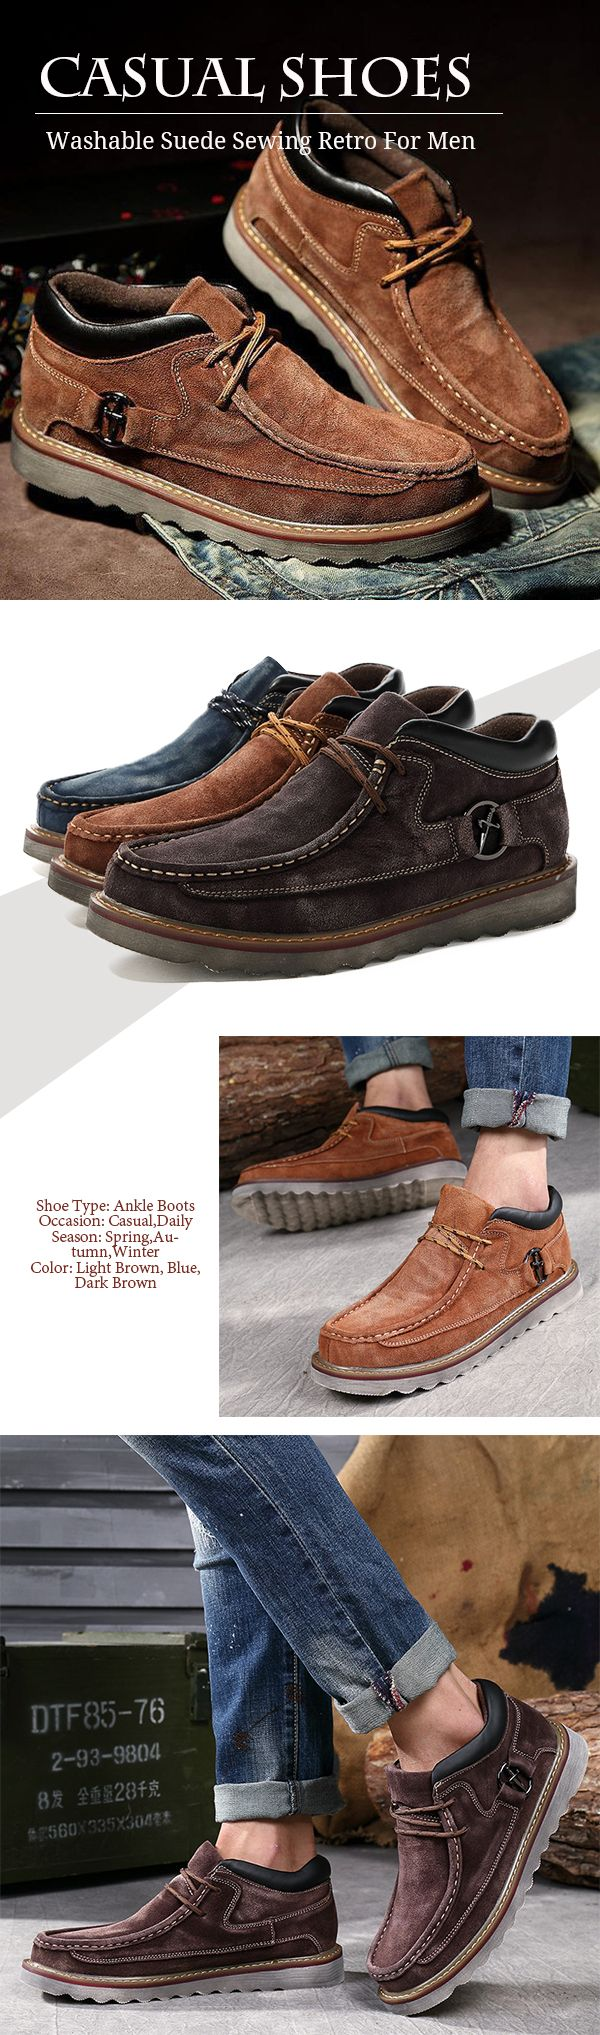 US$41.89 Washable Suede Sewing Retro Classic Lace Up Casual Shoes For Men